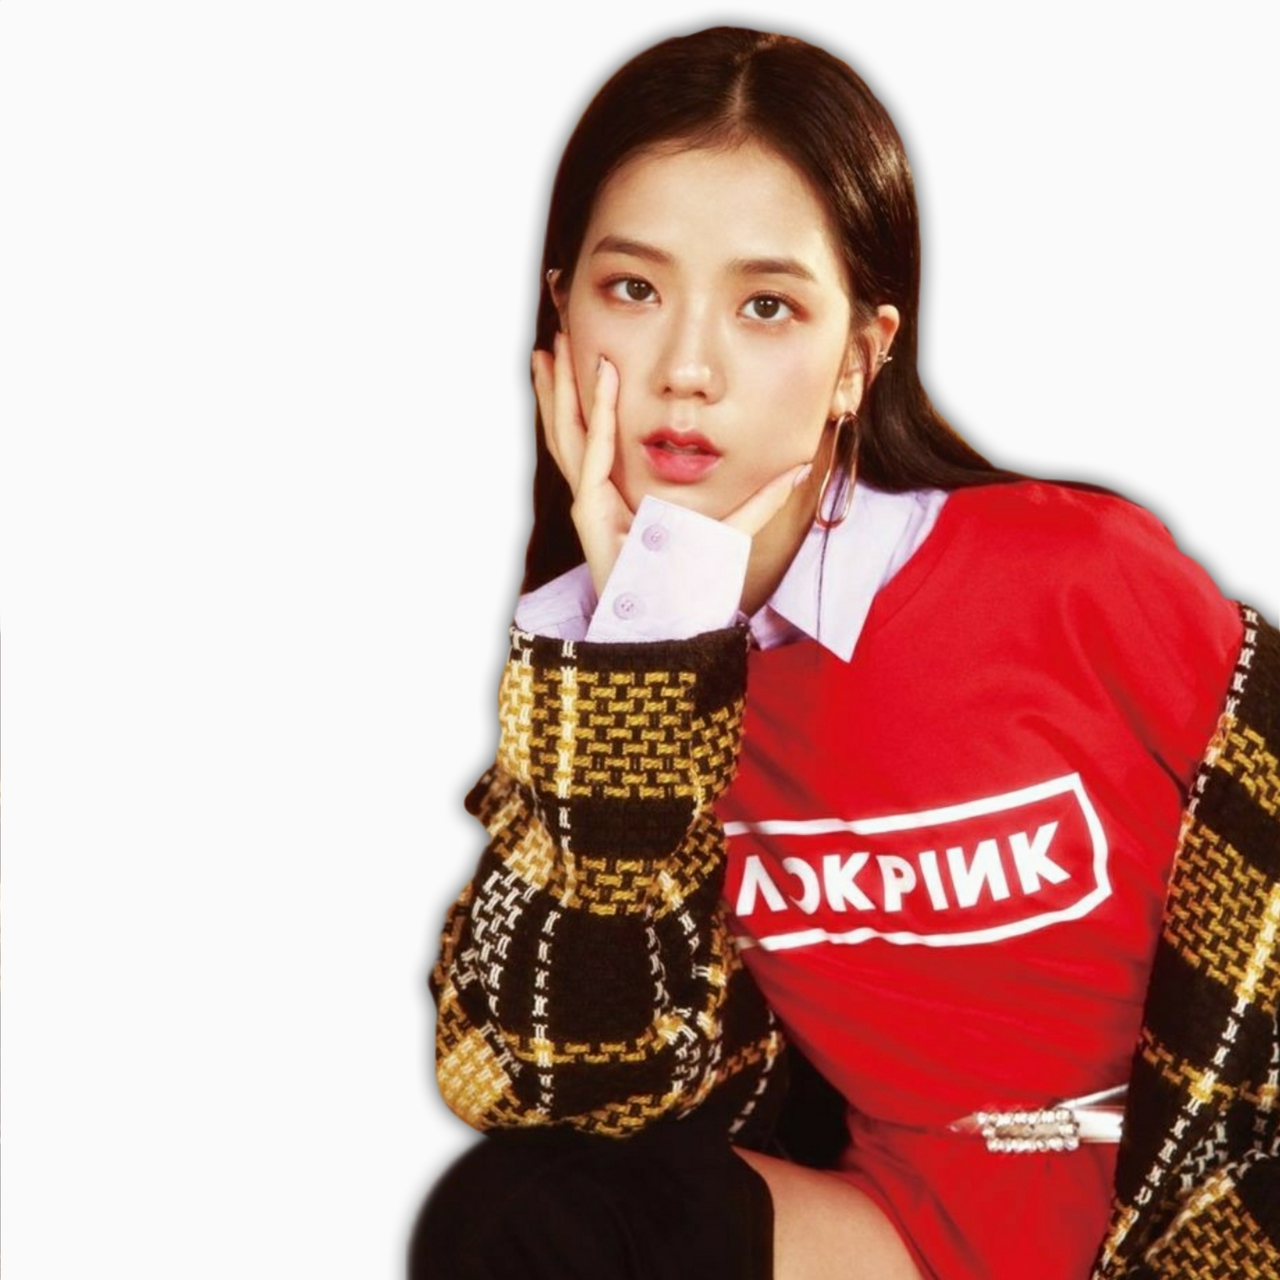 kim jisoo png, overlays, kpop idol png and jisoo blackpink png